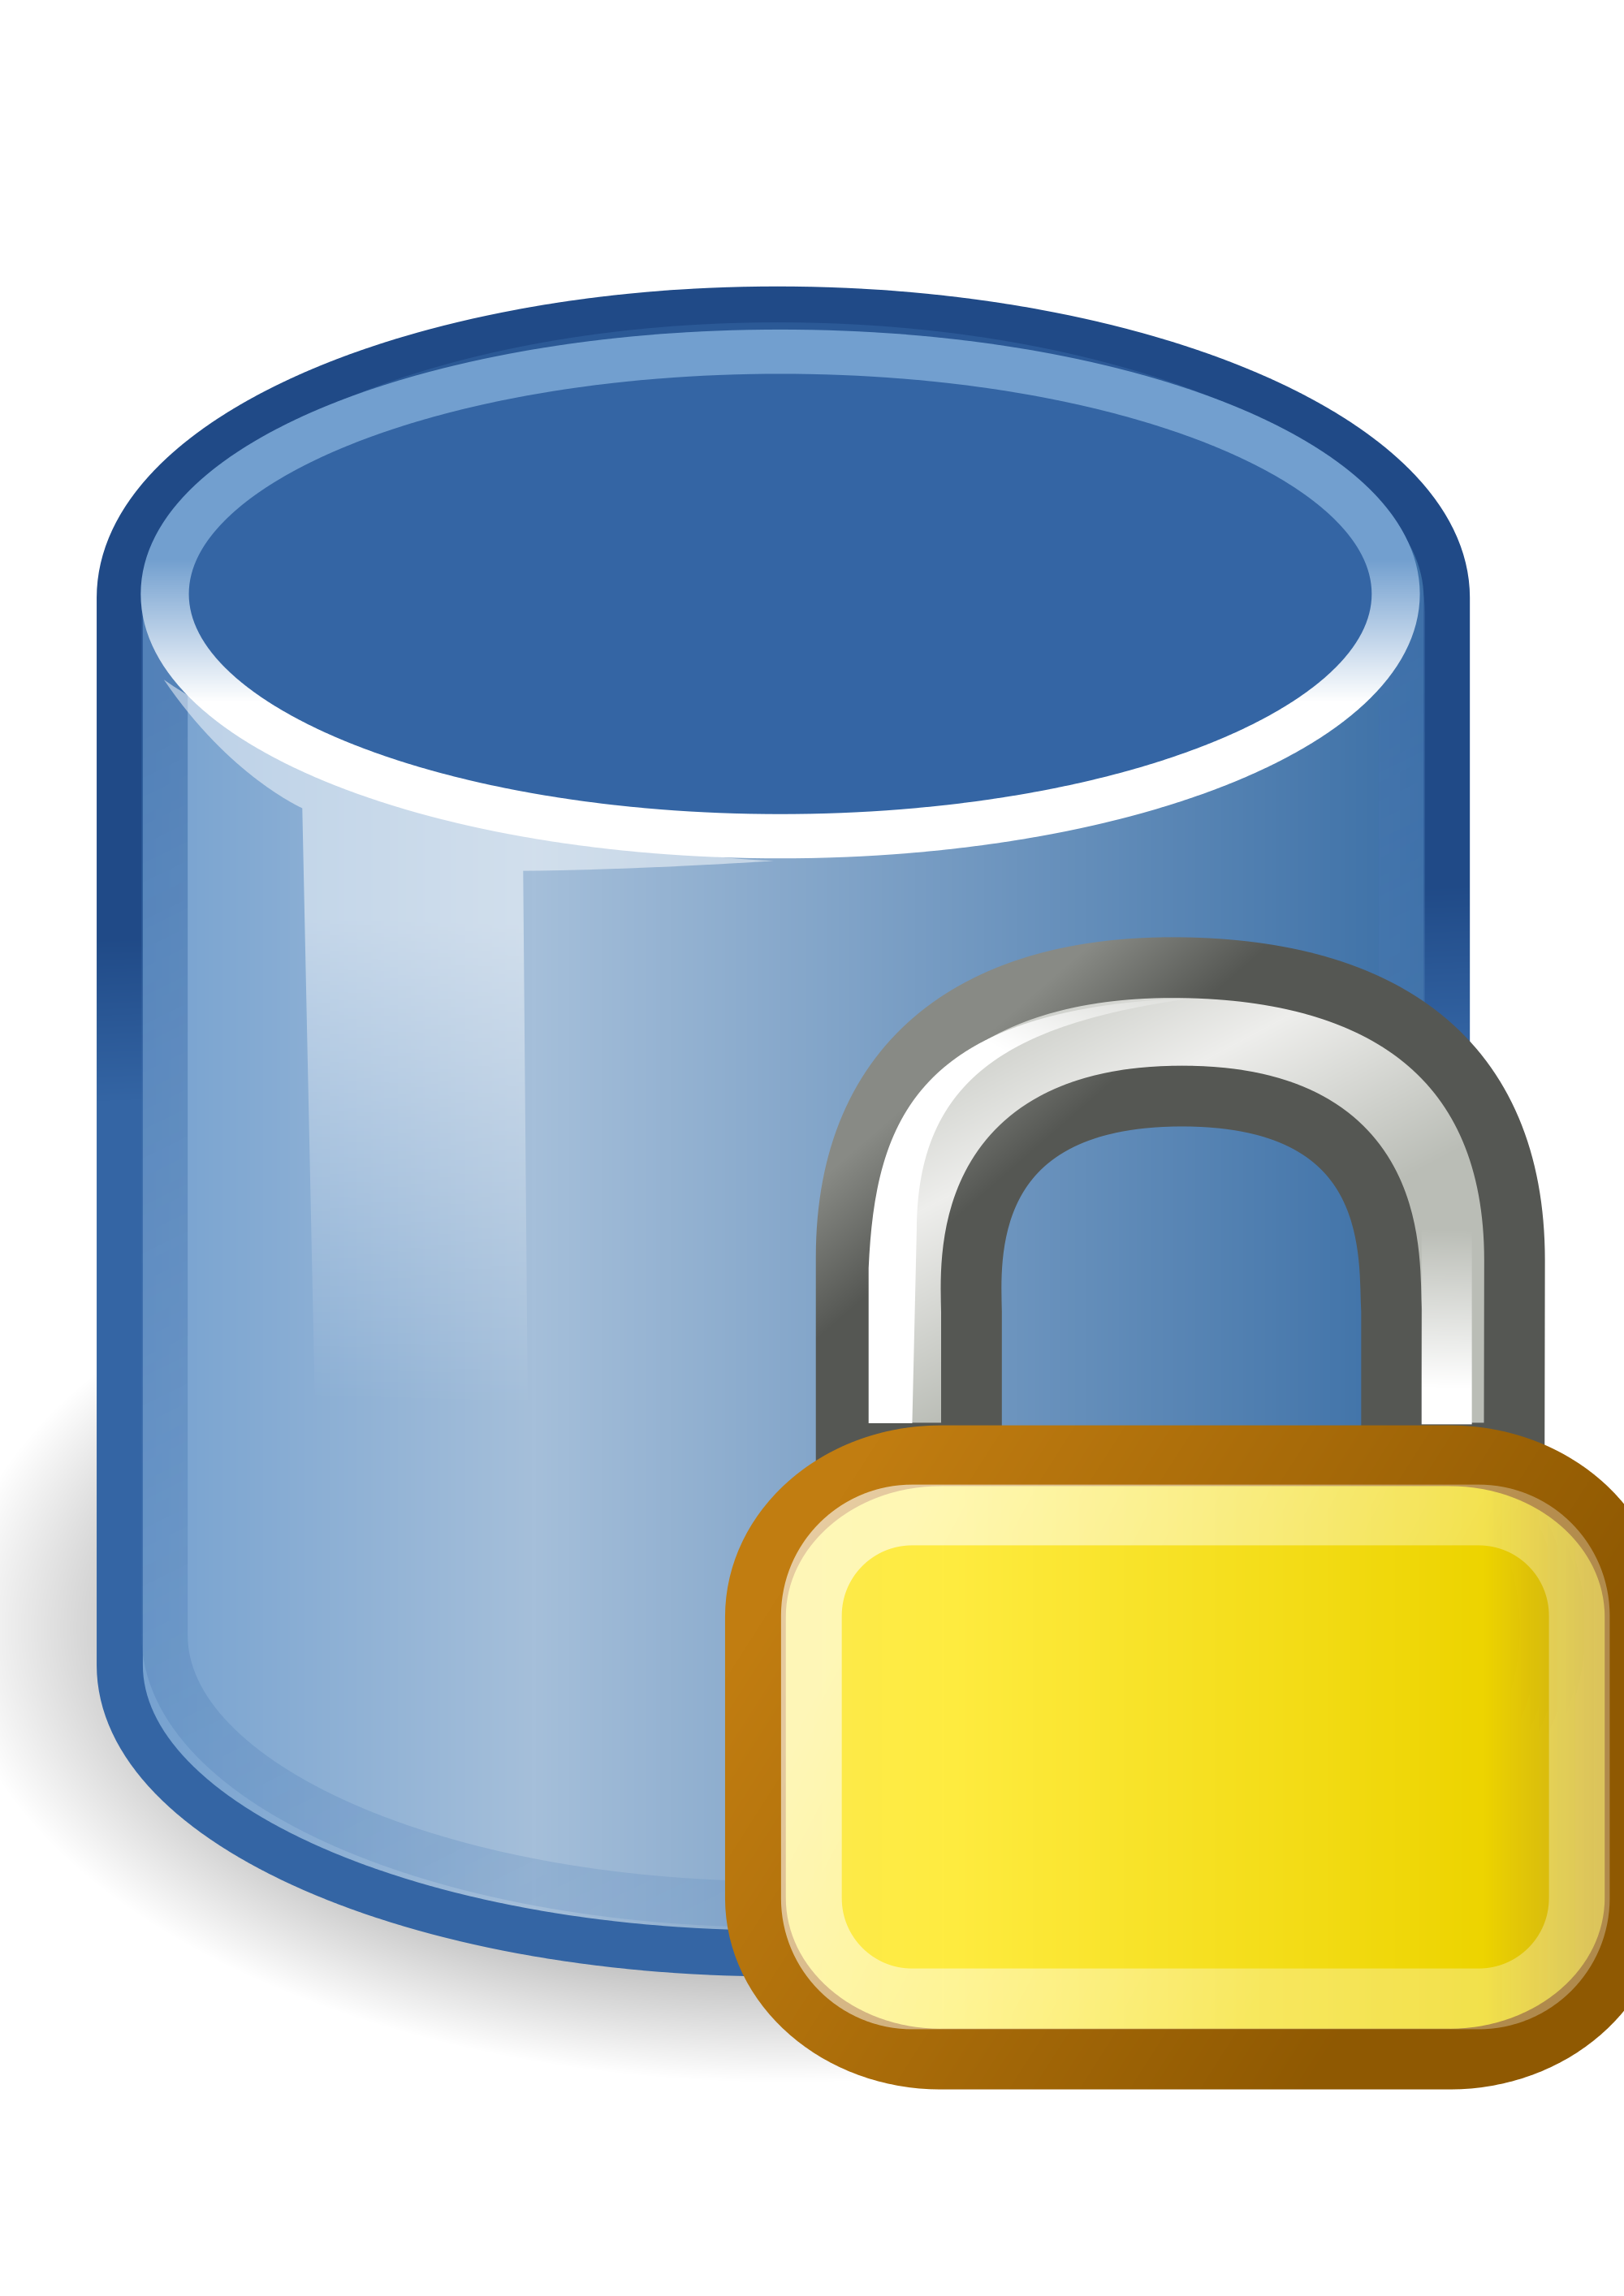 Cliparts files shop of. Lock clipart locked